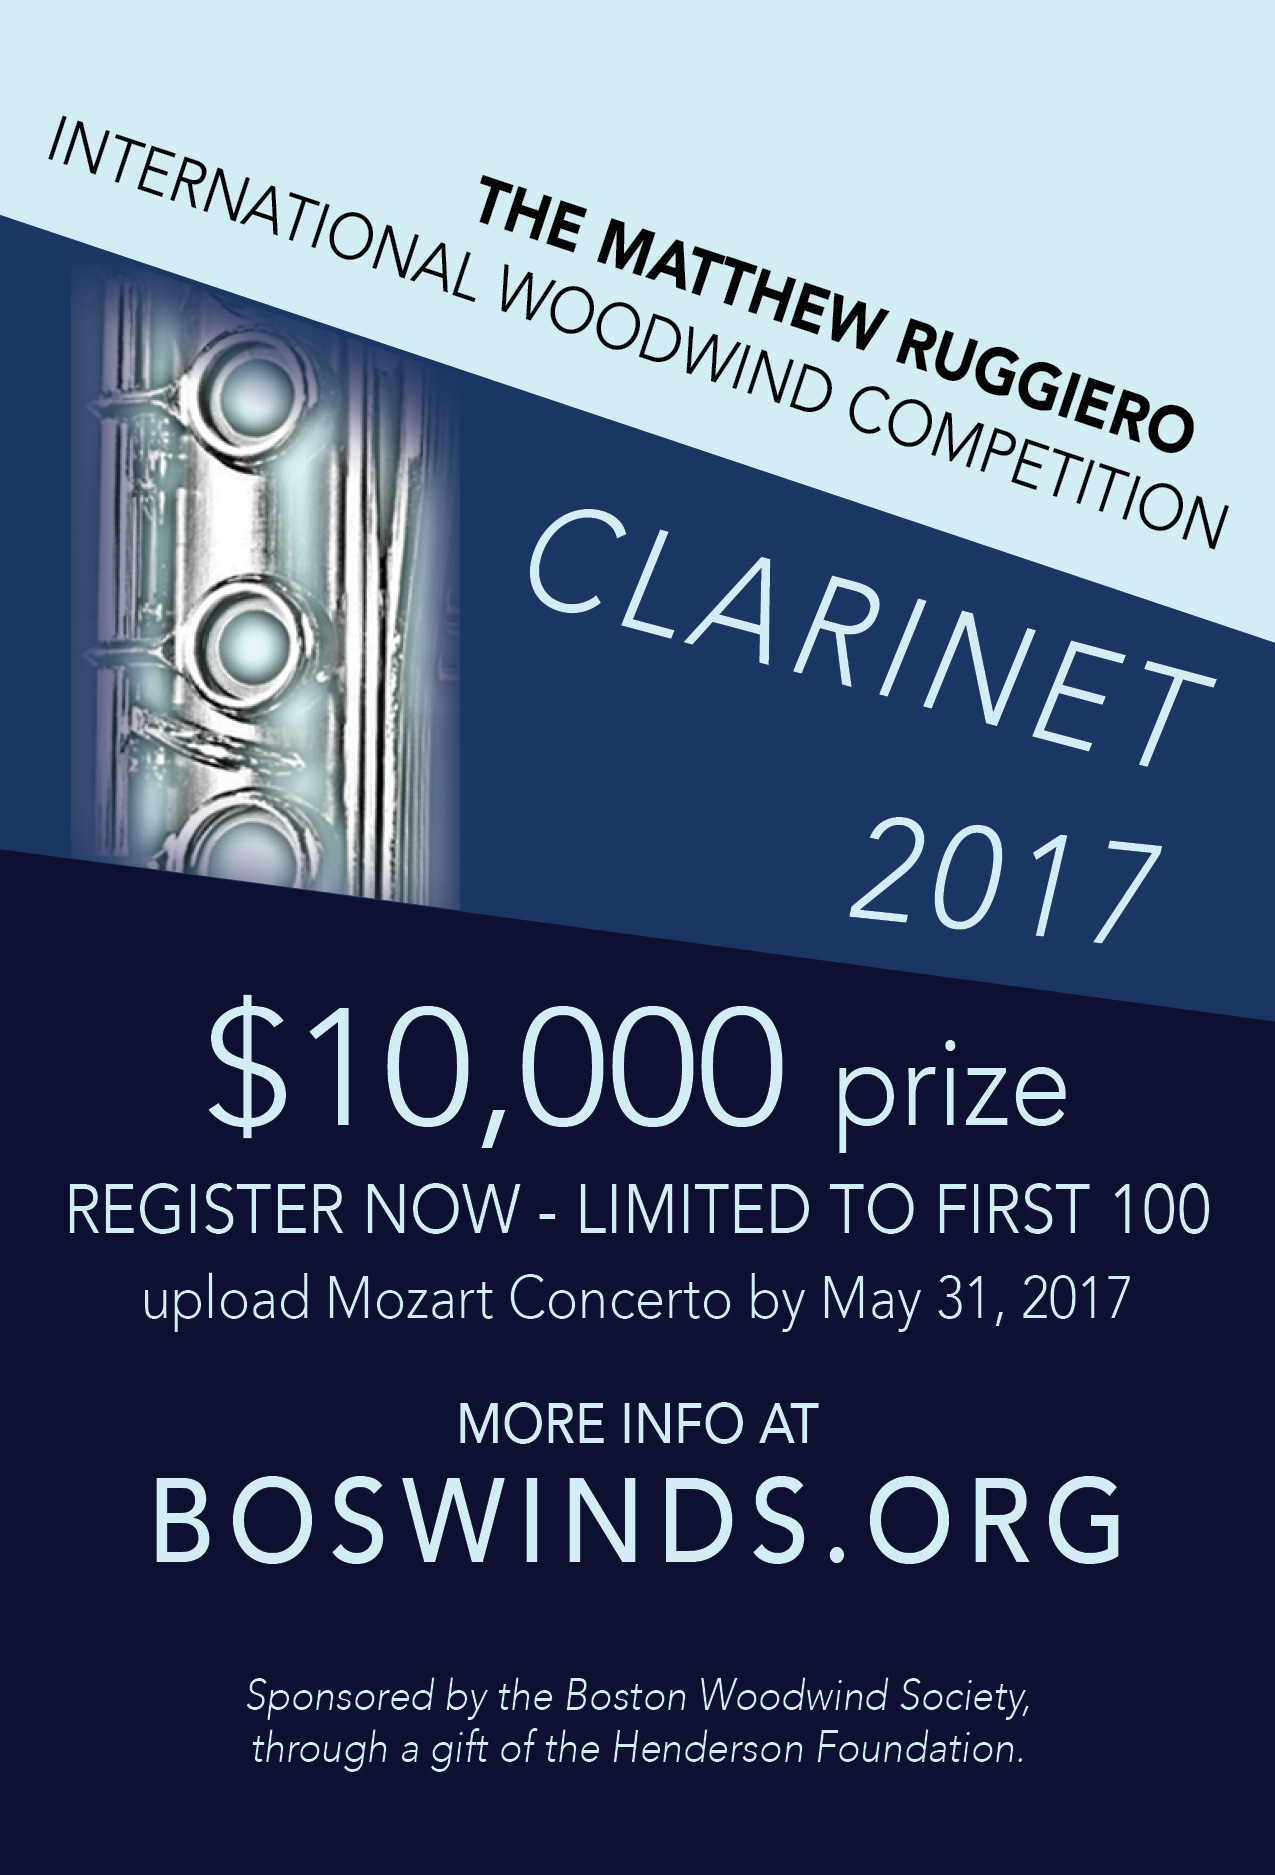 2017 Clarinet Competition